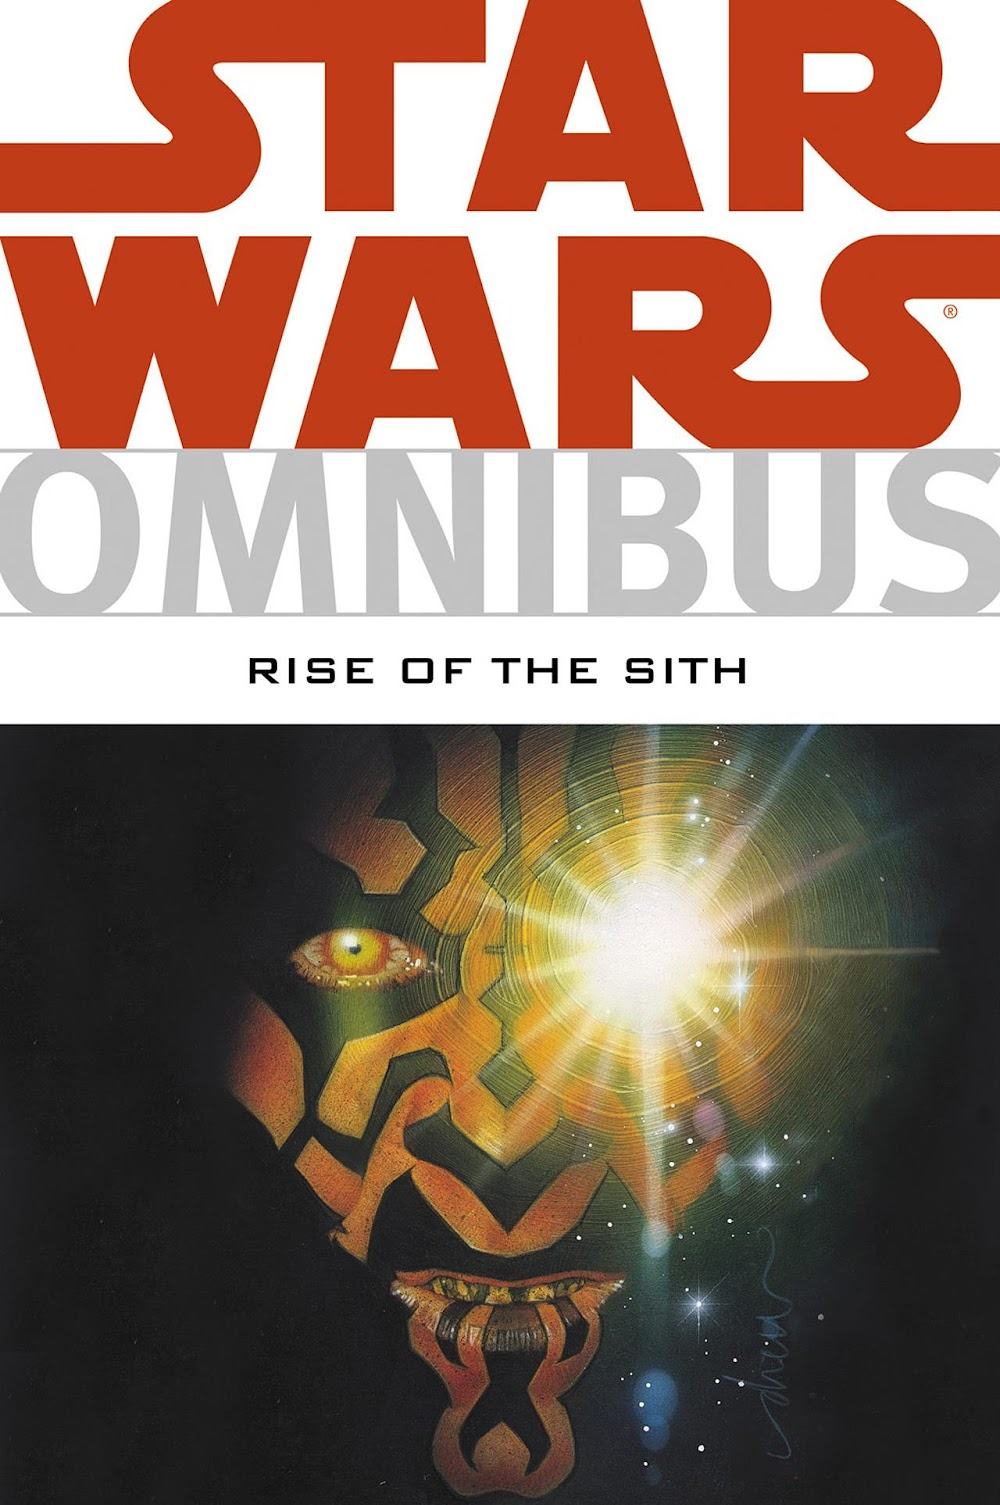 Star Wars Omnibus: Rise of the Sith (2009)